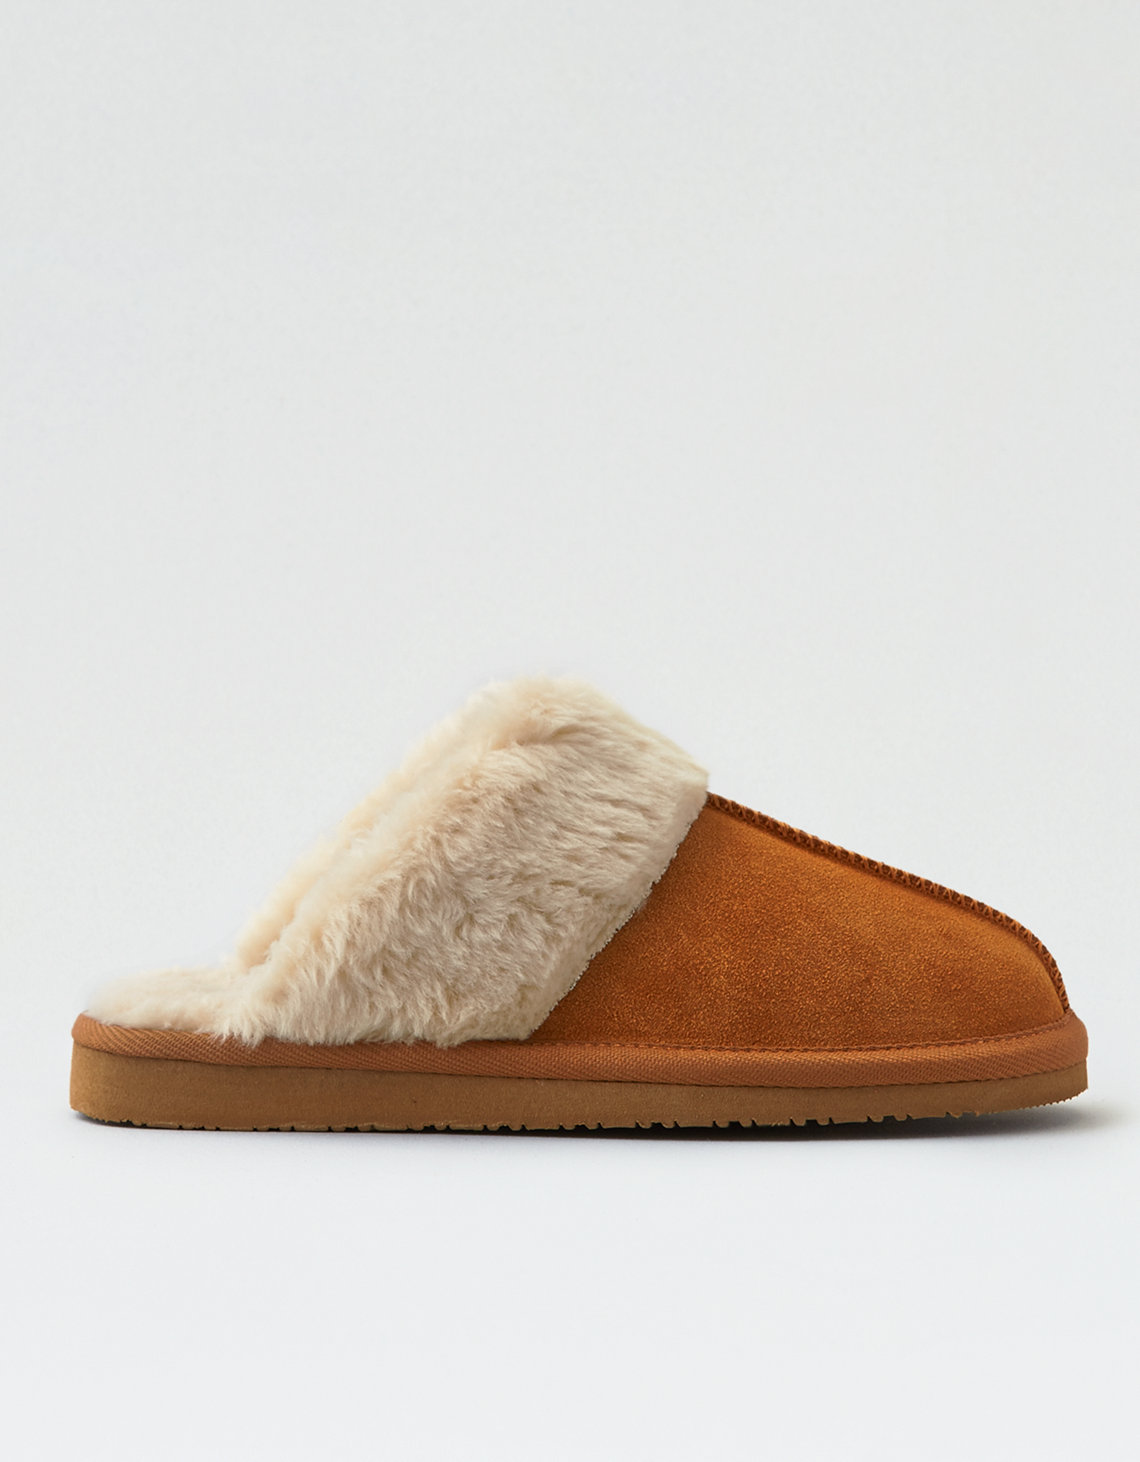 62841ff47af7 Minnetonka Chesney Scuff Slipper. Placeholder image. Product Image